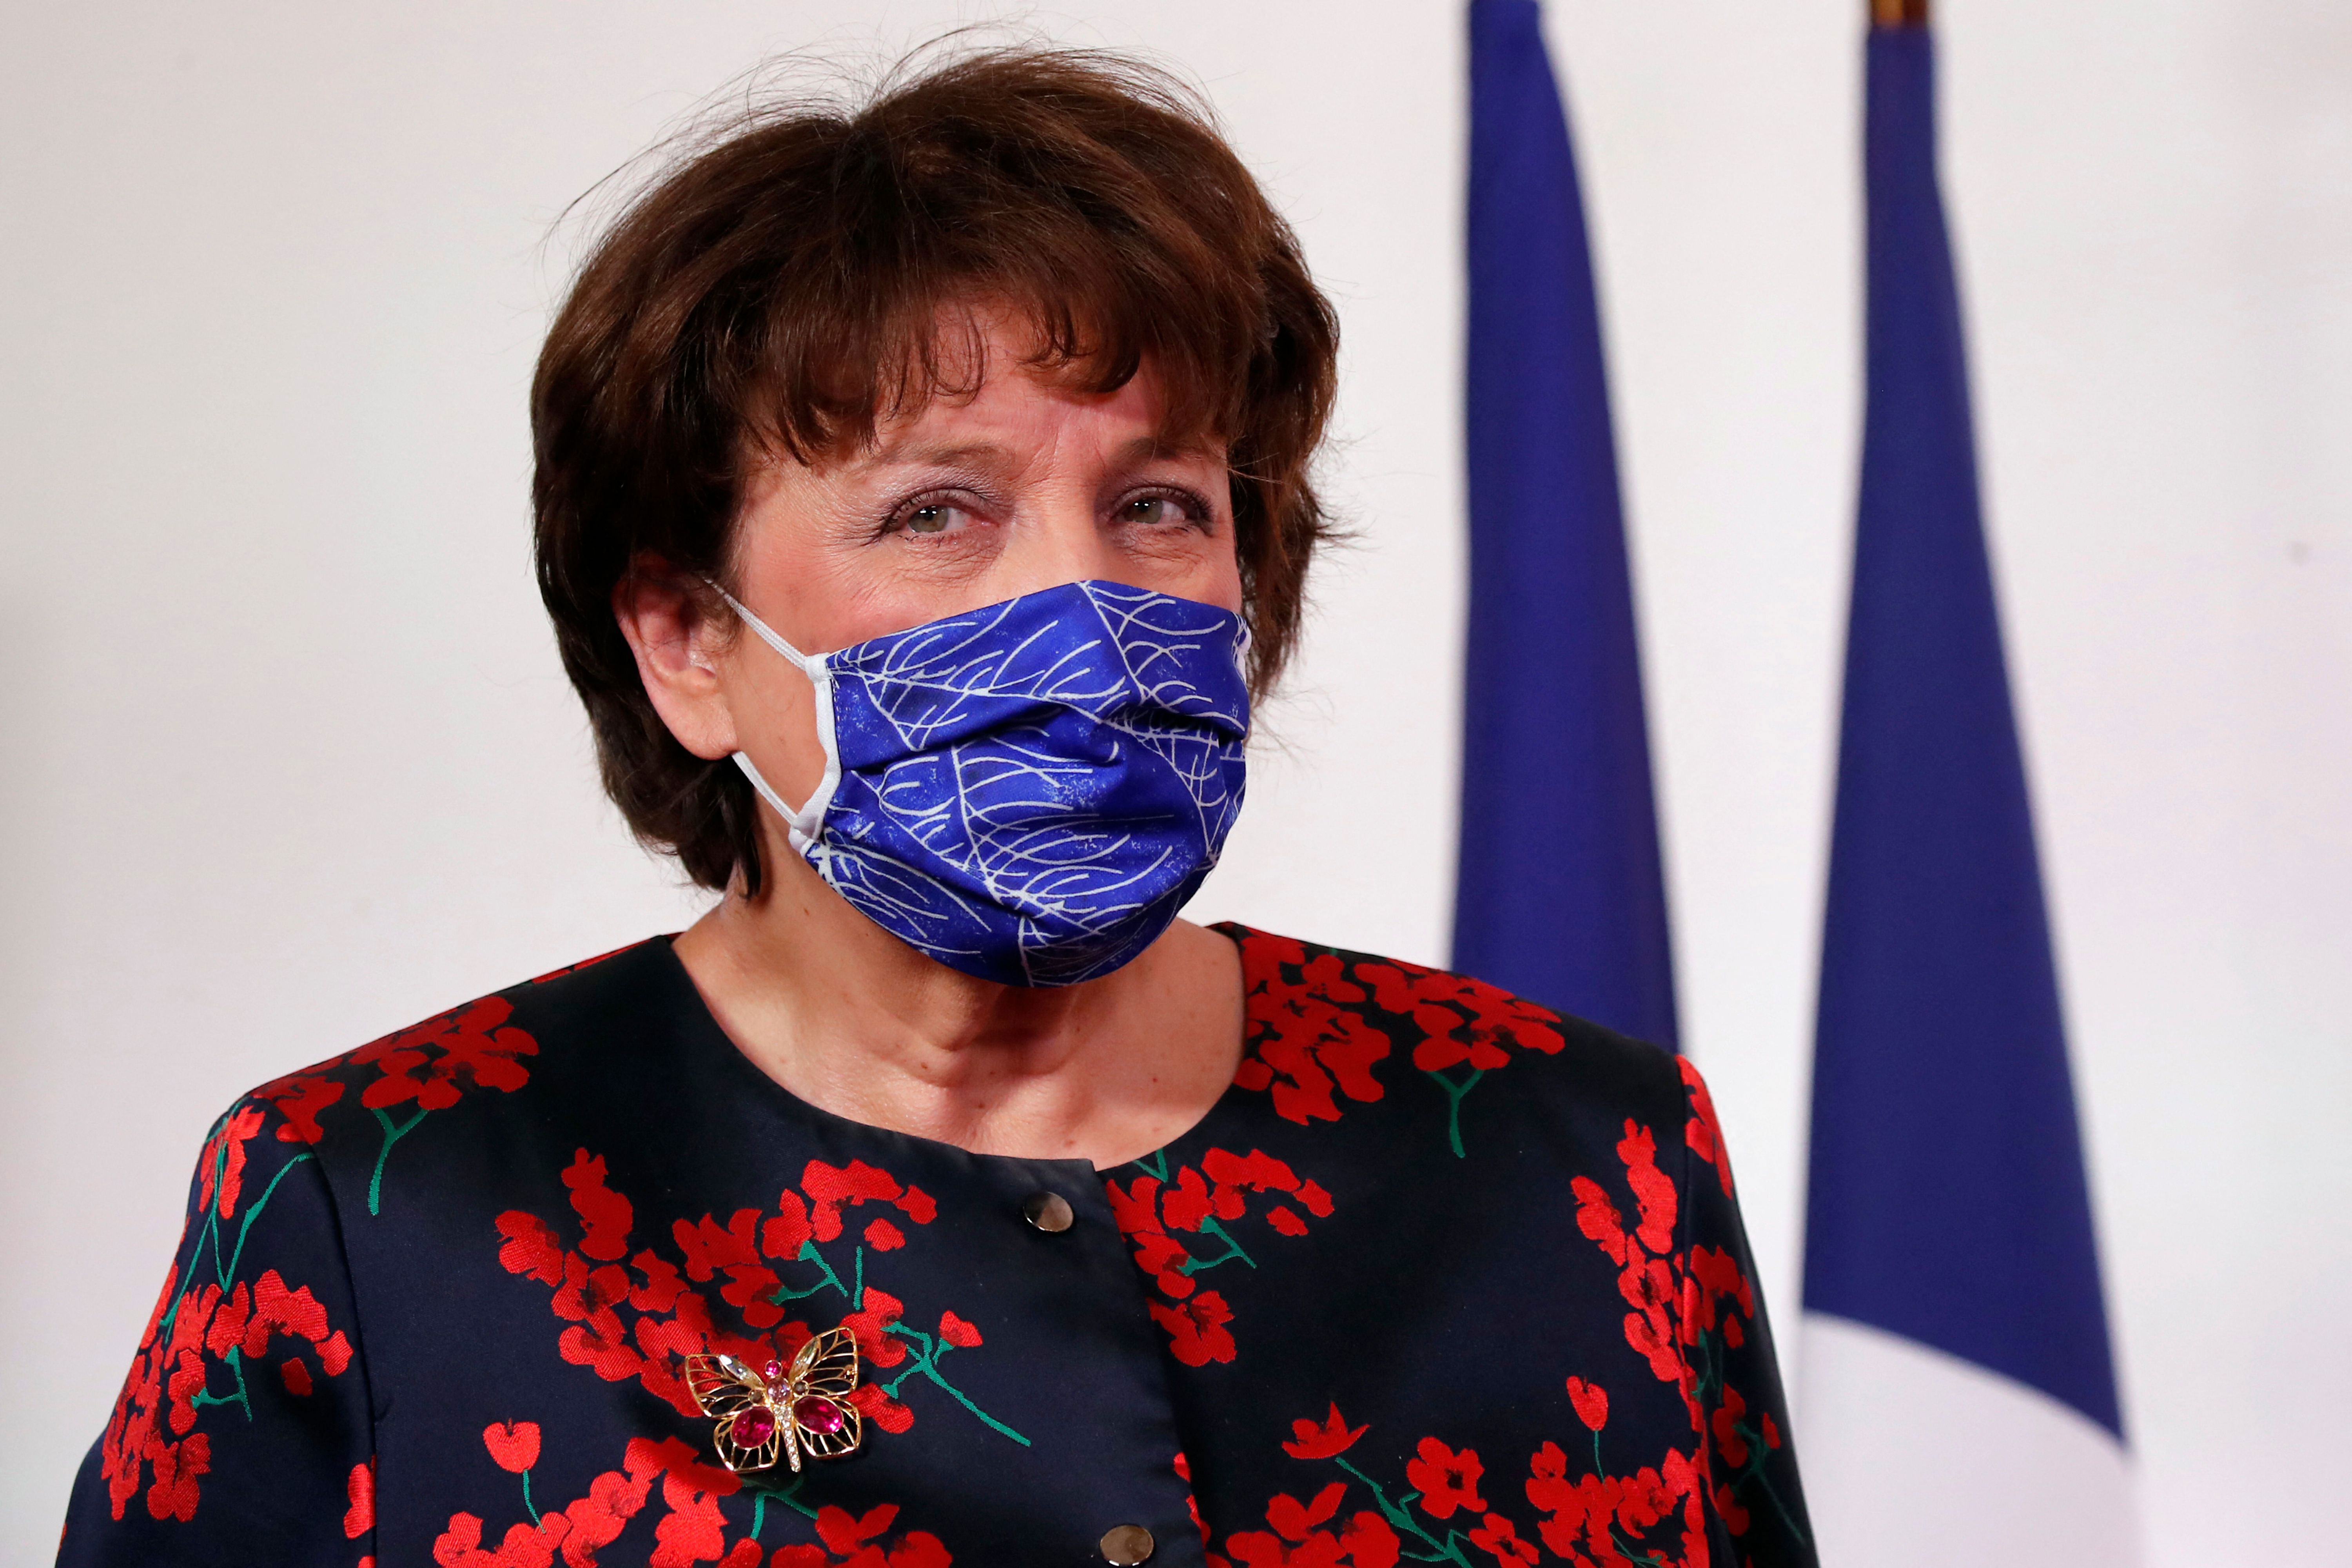 France's Culture Minister Roselyne Bachelot attends an event in Paris on February 11.